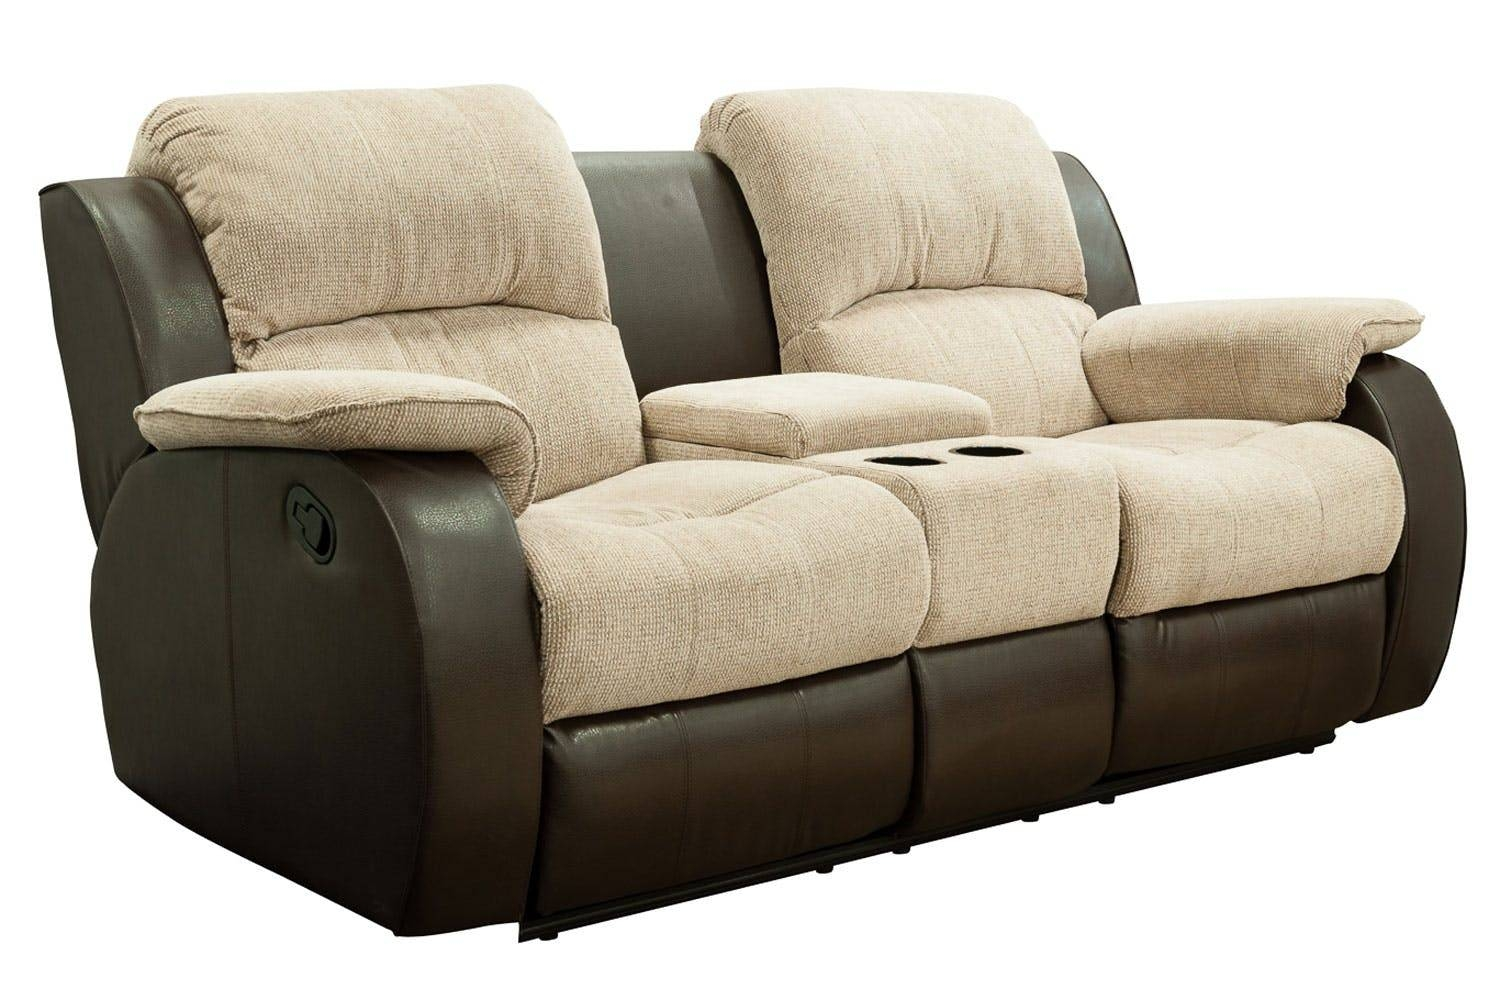 Sofas Center : Reclining Sofa With Console Double Power Recliner pertaining to Sofas With Consoles (Image 18 of 30)